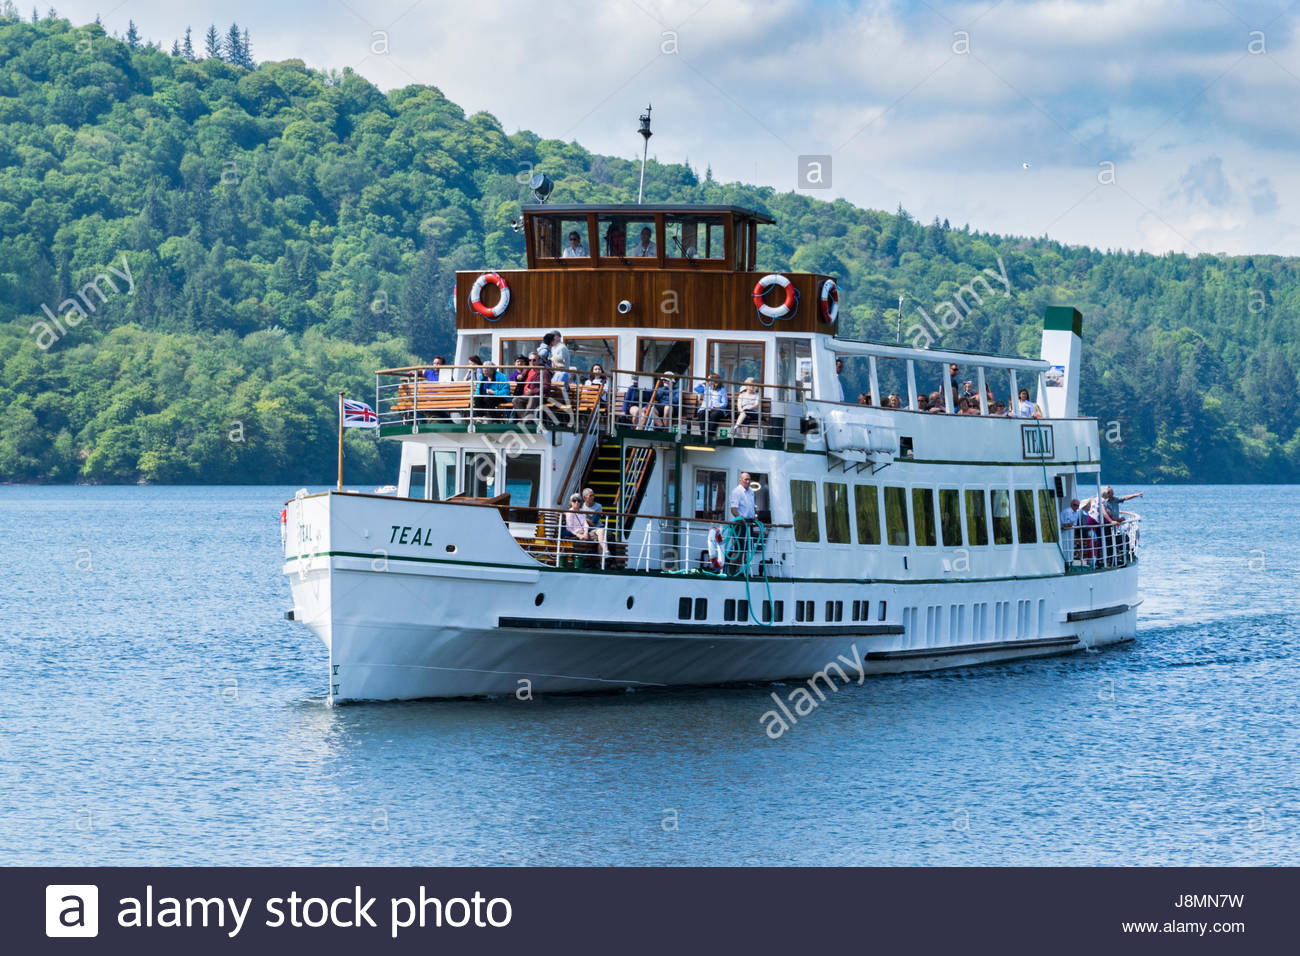 The passenger steamer (boat), Teal, heads into the pier at Bowness on Lake Windermere - Stock Image